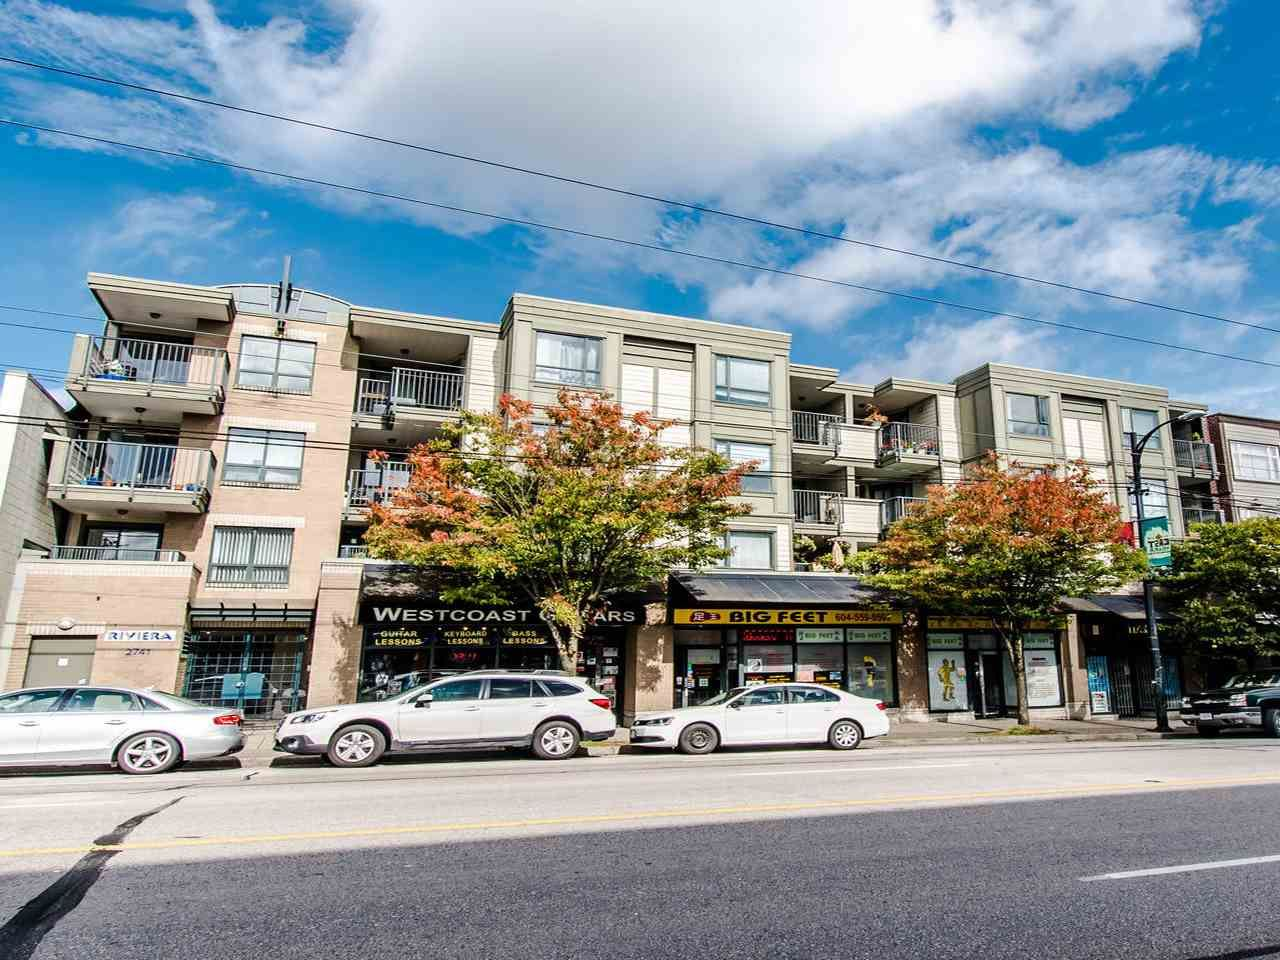 "Main Photo: 205 2741 E HASTINGS Street in Vancouver: Hastings Sunrise Condo for sale in ""The Riviera"" (Vancouver East)  : MLS®# R2407419"